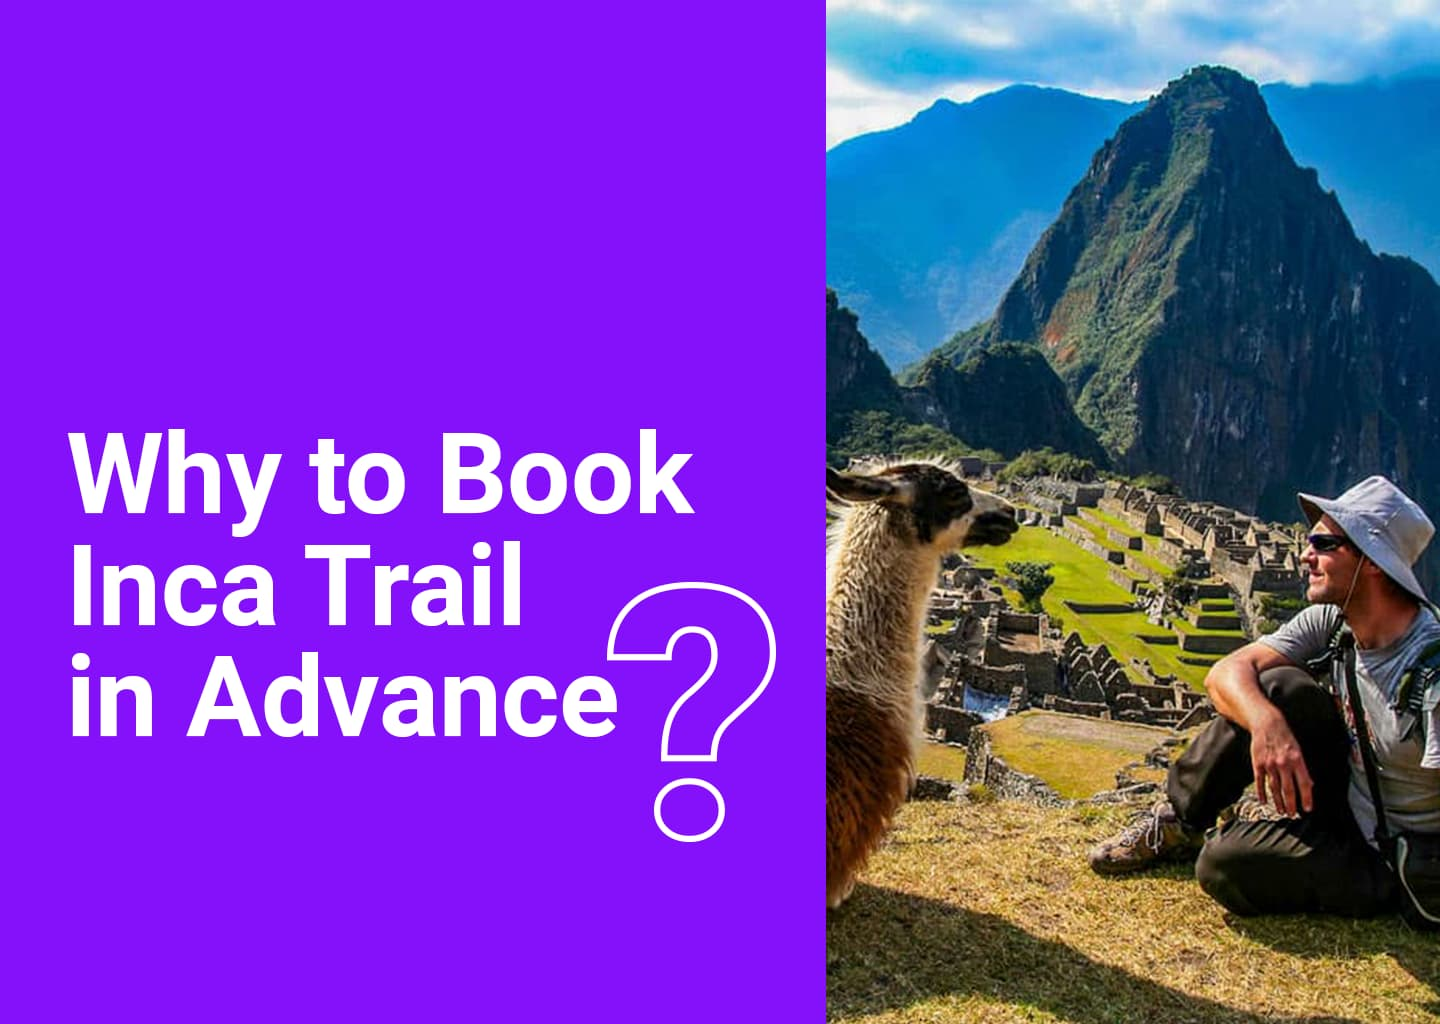 why to book inca trail in advance